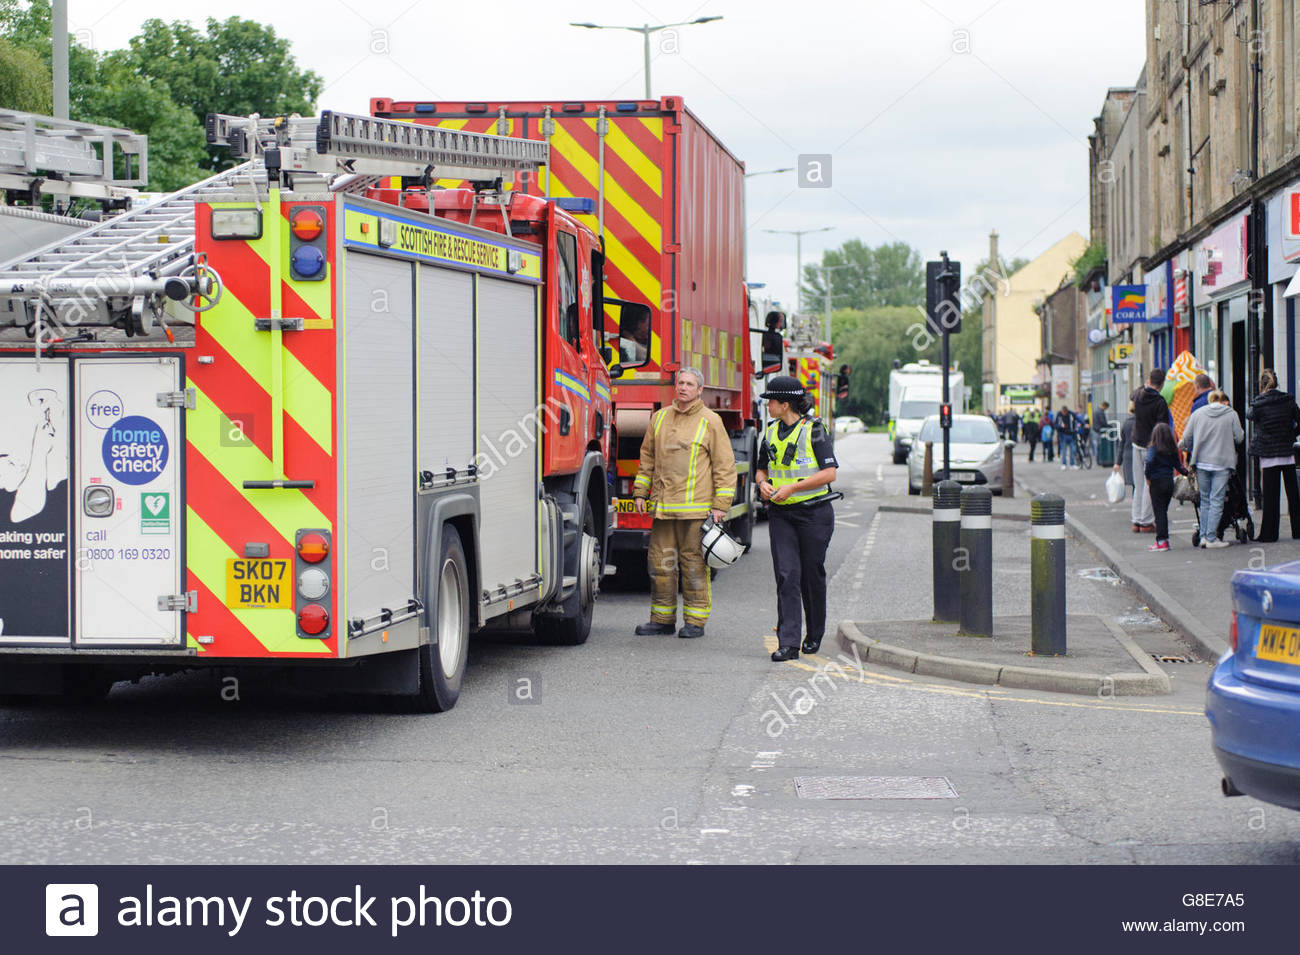 Falkirk, UK. 29 June, 2016. Fire appliances and police officer during the incident. While carrying out an investigation - Stock Image